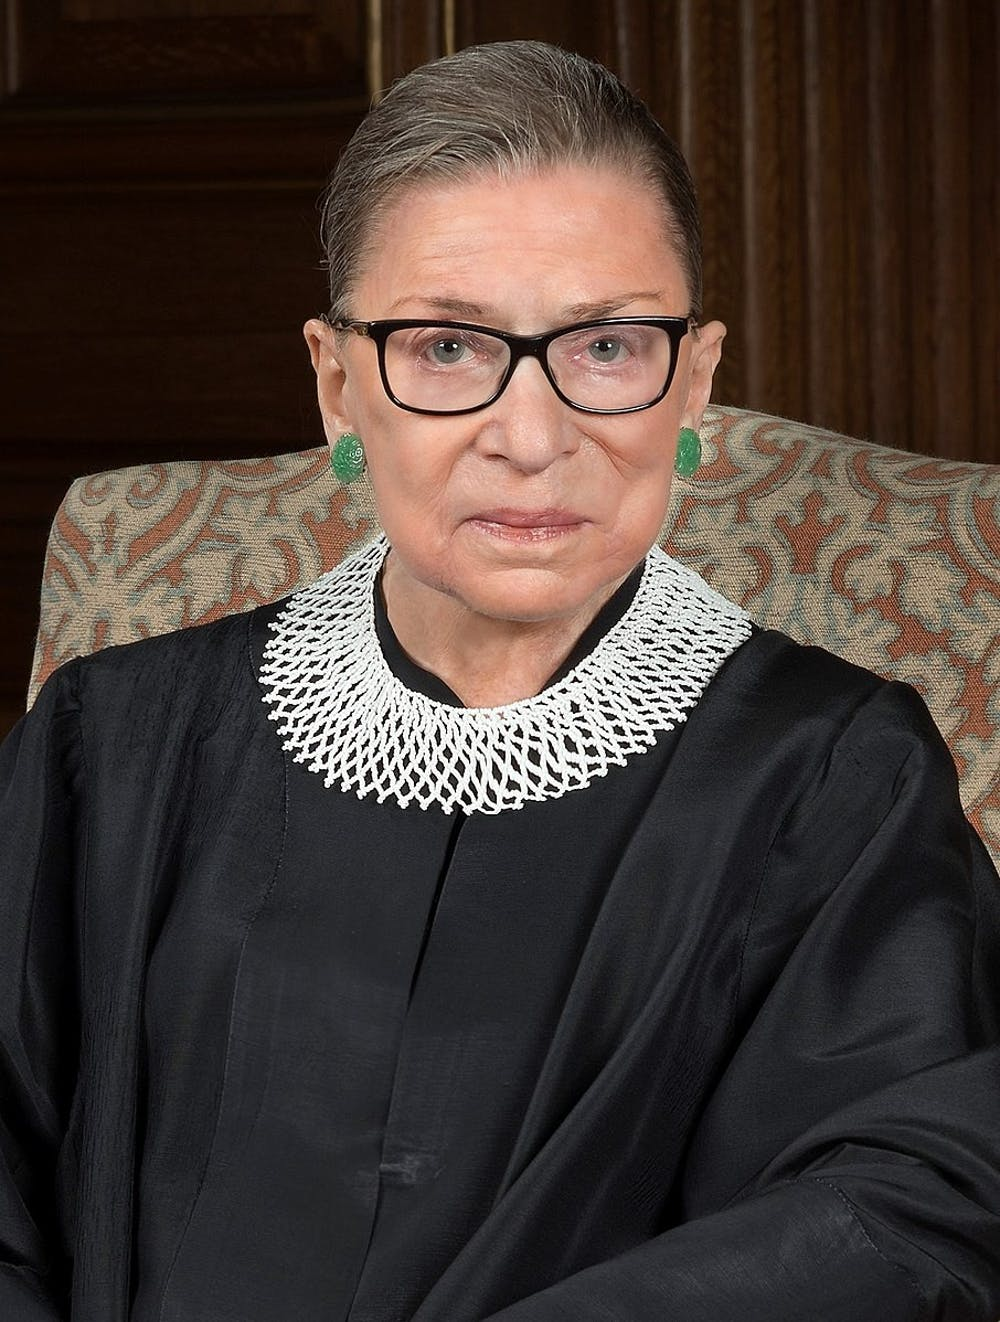 <p>Ruth Bader Ginsburg's legacy lives on — but an ugly partisan battle ensues over replacing her in the Supreme Court</p>